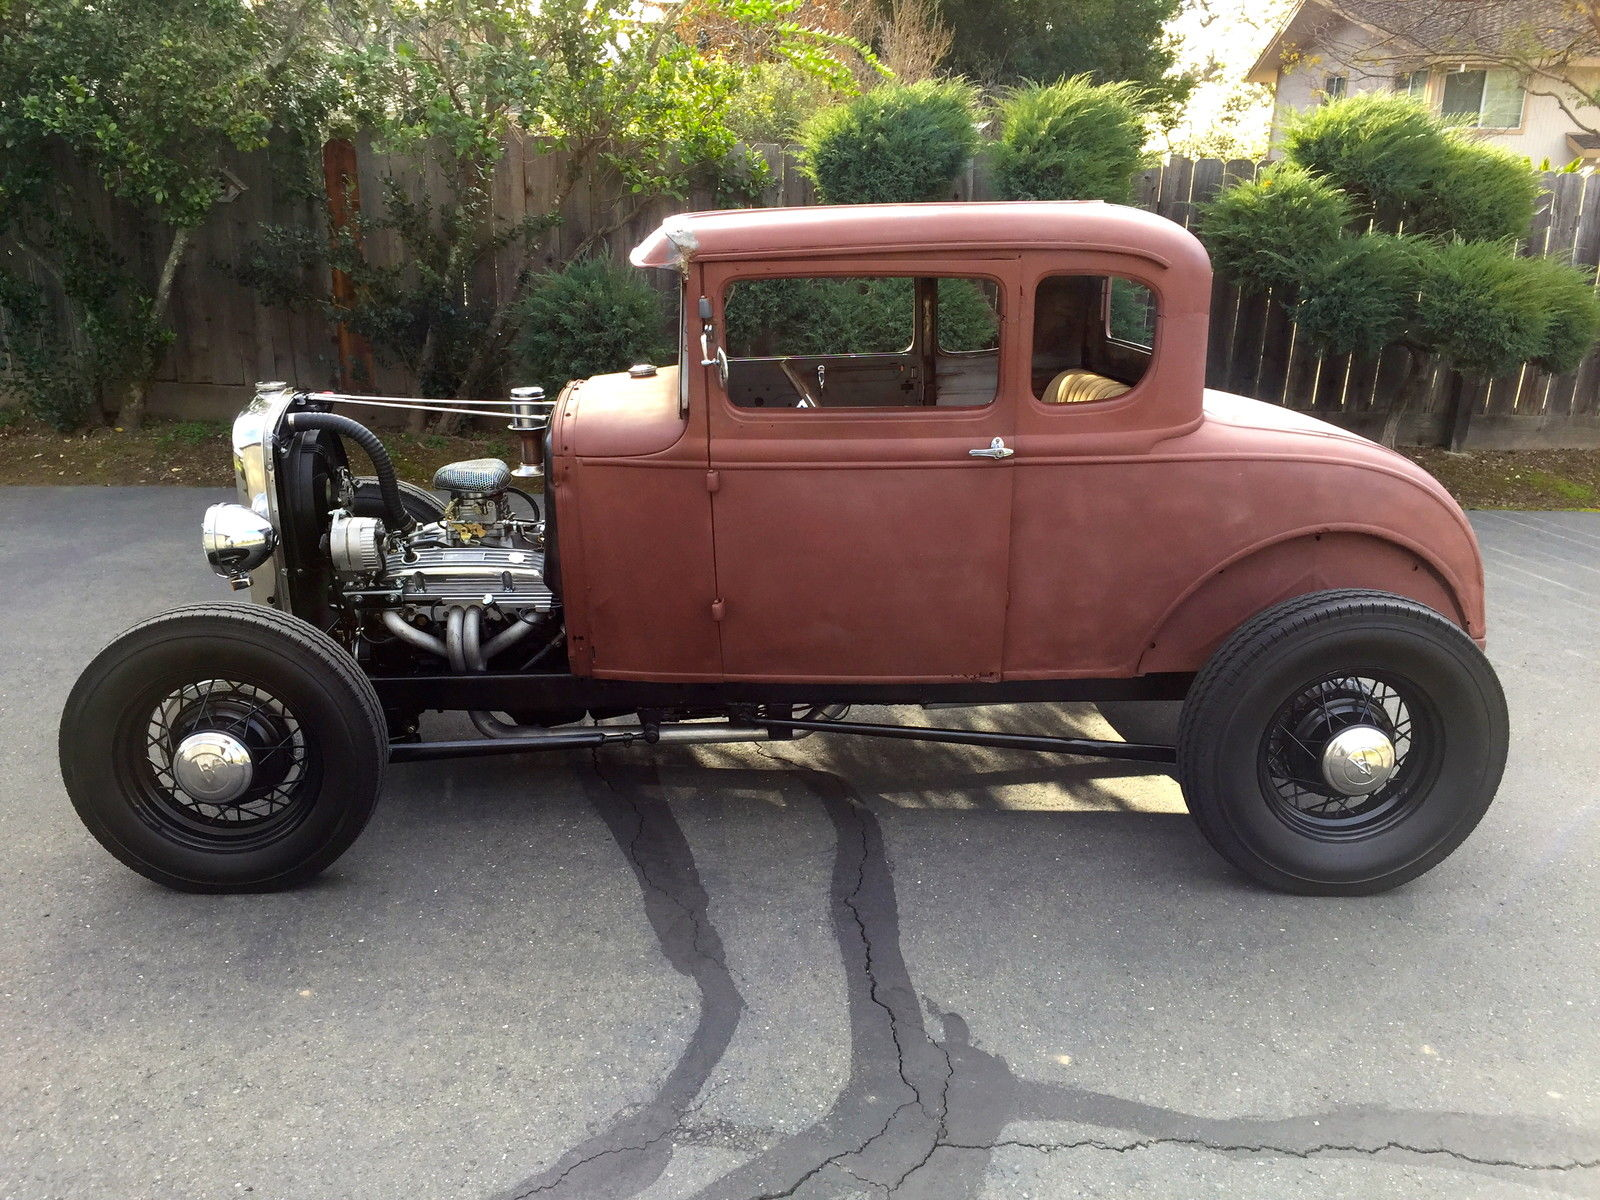 1931 ford model a coupe hot rod v8 california car 1928 1929 1930 1931 scta 1 1931 ford model a coupe hot rod v8 california car 1928 1929 1930 1928 model a ford wiring diagram at mr168.co